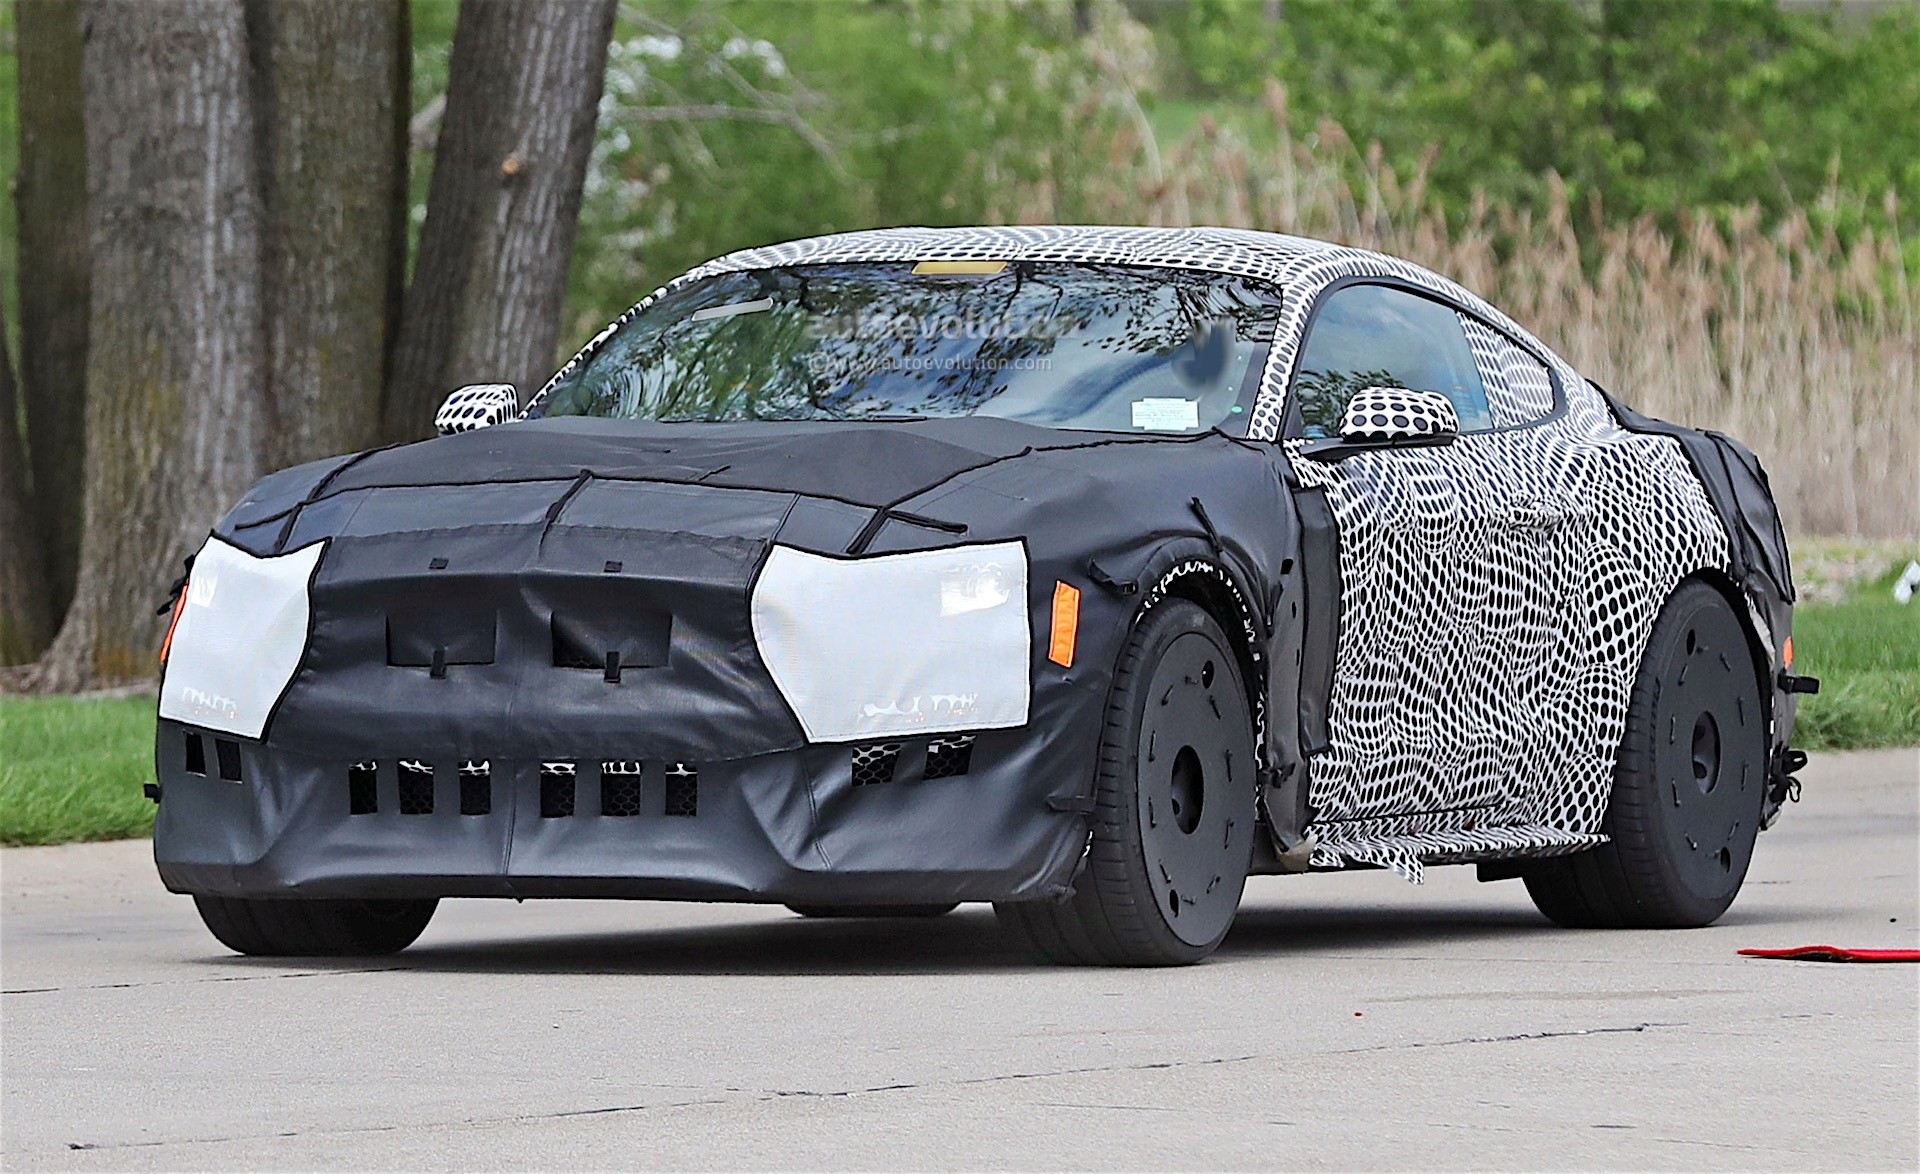 2019 Shelby Gt500 Top Speed Confirmed To Be Over 200 Mph Autoevolution